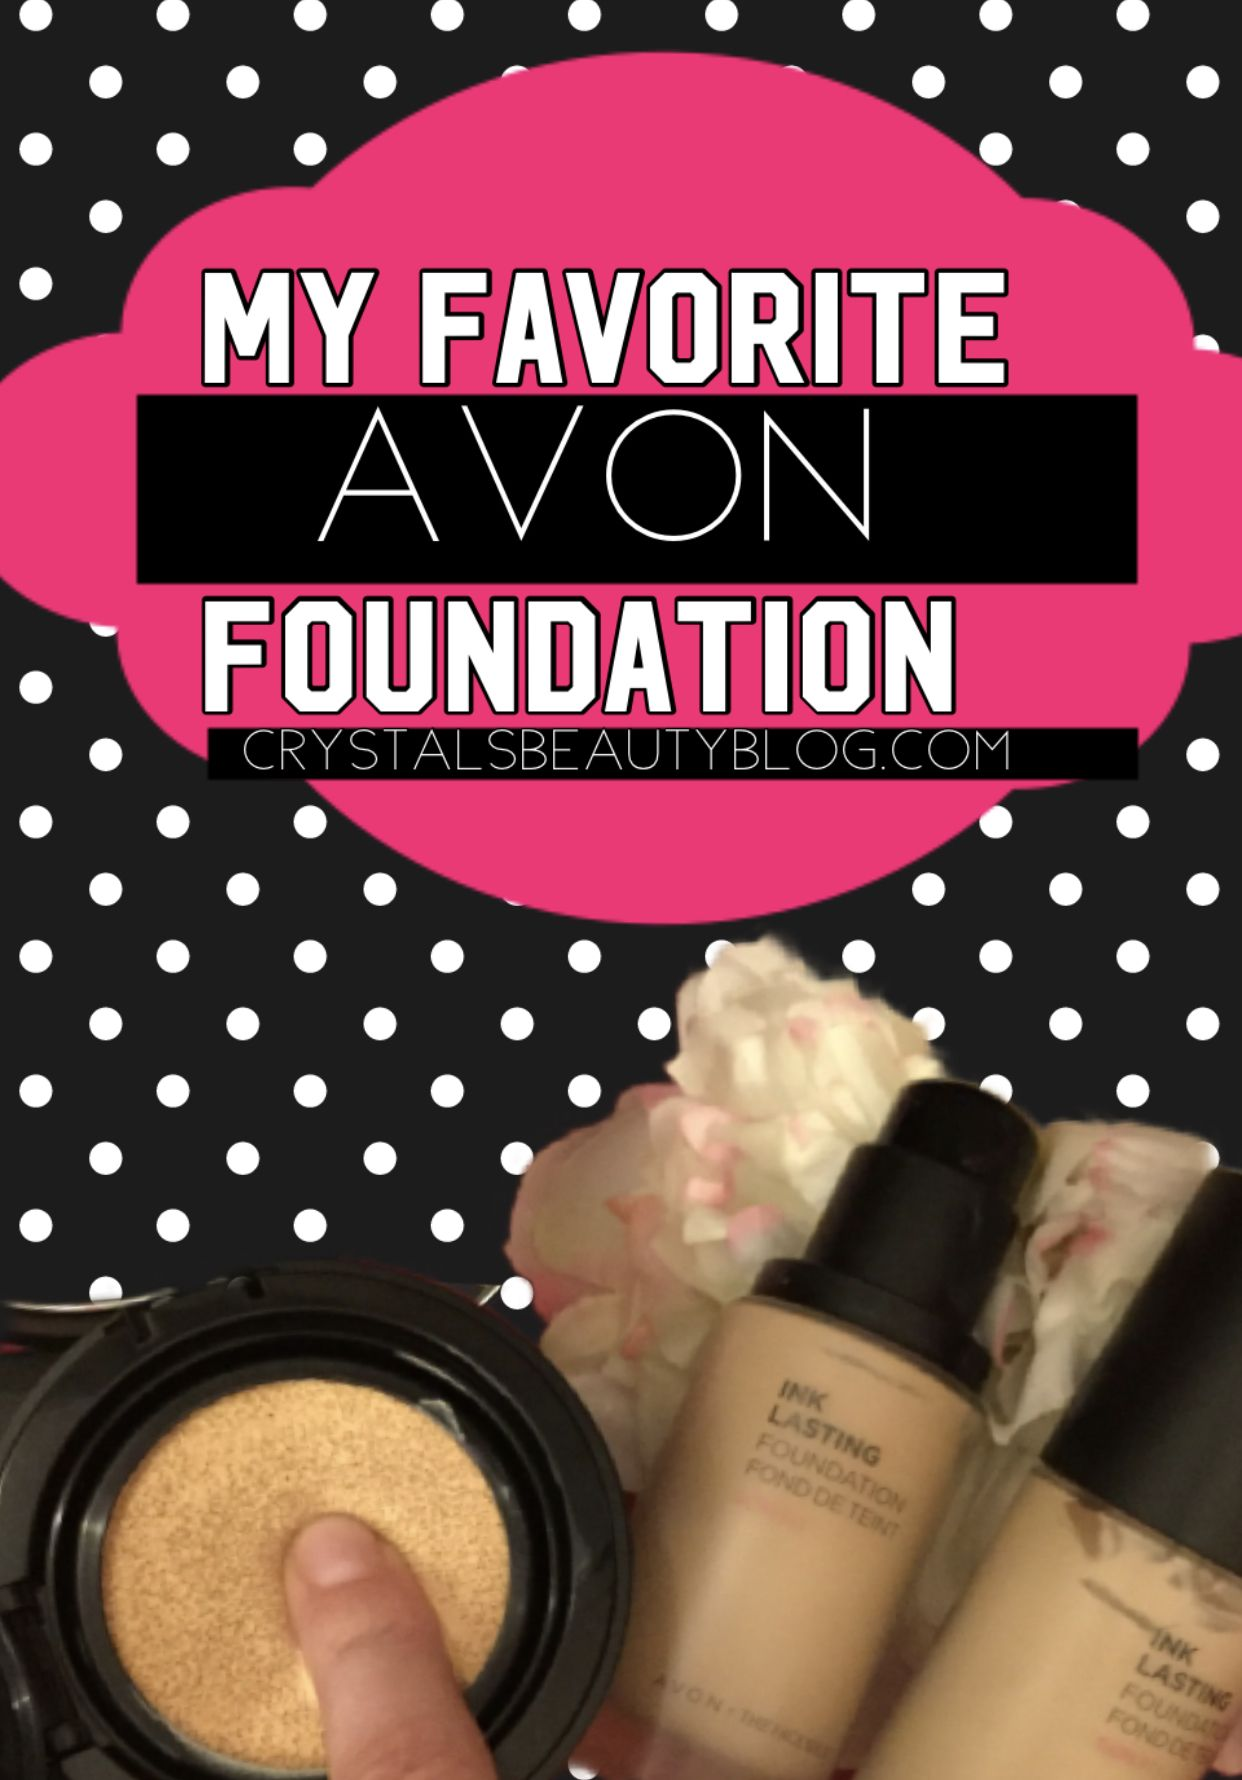 My Favorite Avon Foundation in 2020 Avon, Beauty blog